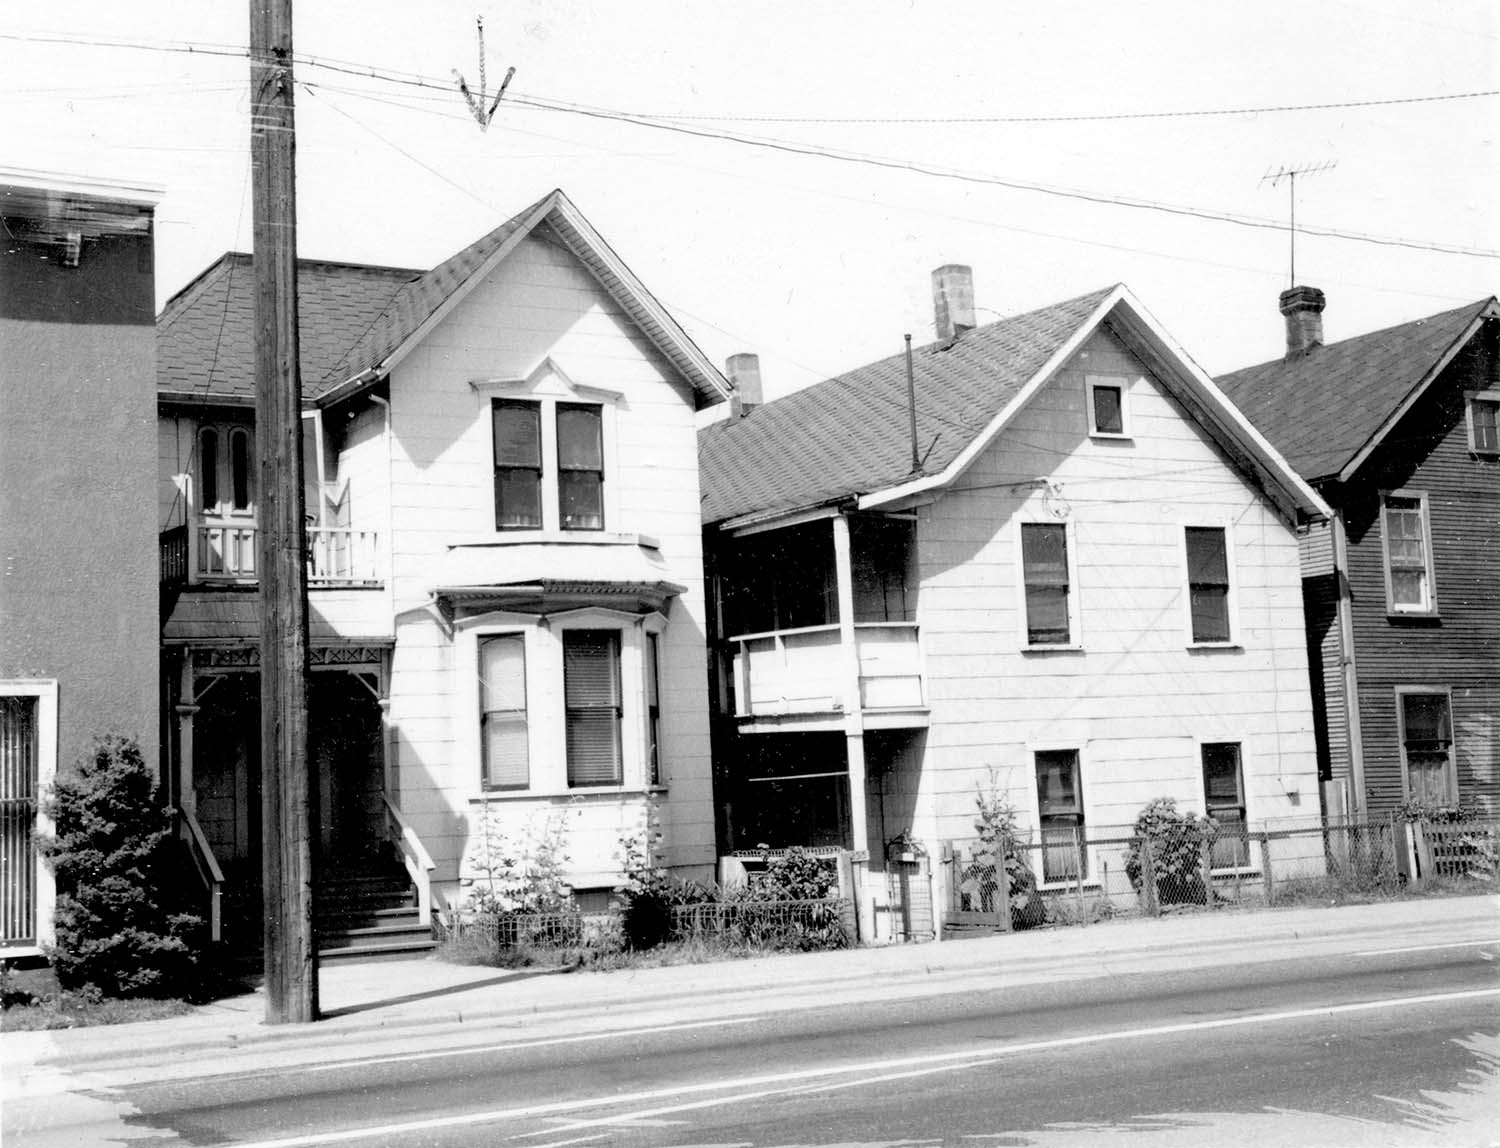 251 Prior Street, front, 1968. Photograph also shows 255 Prior Street and part of 259 Prior Street. Reference code COV-S168-: CVA 203-24